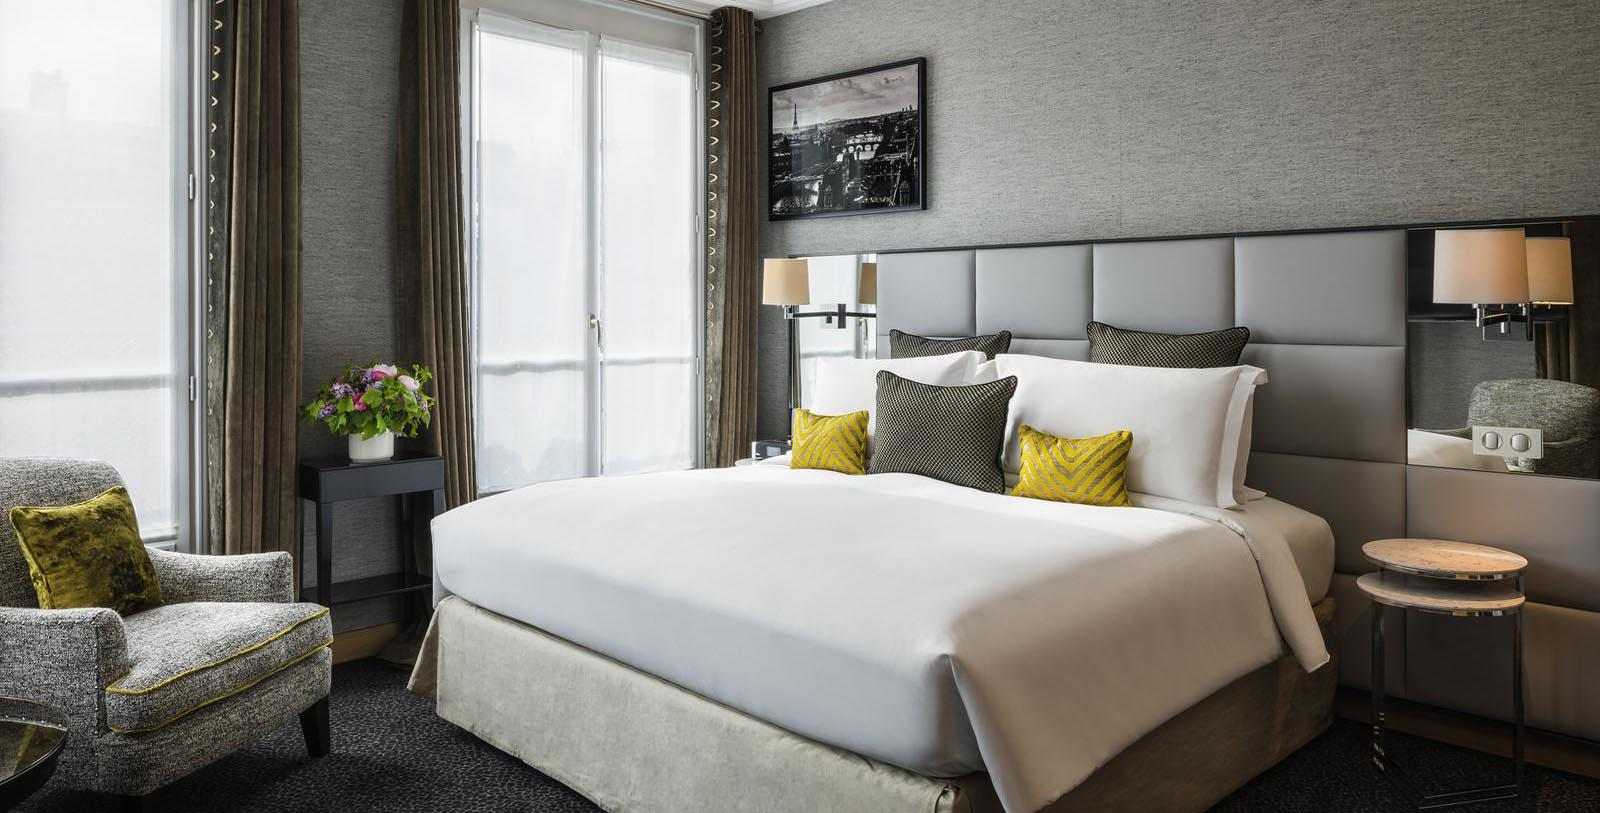 Image of Guestroom at Sofitel Paris Baltimore Tour Eiffel, 1892, Member of Historic Hotels Worldwide, in Paris, France, Accommodations